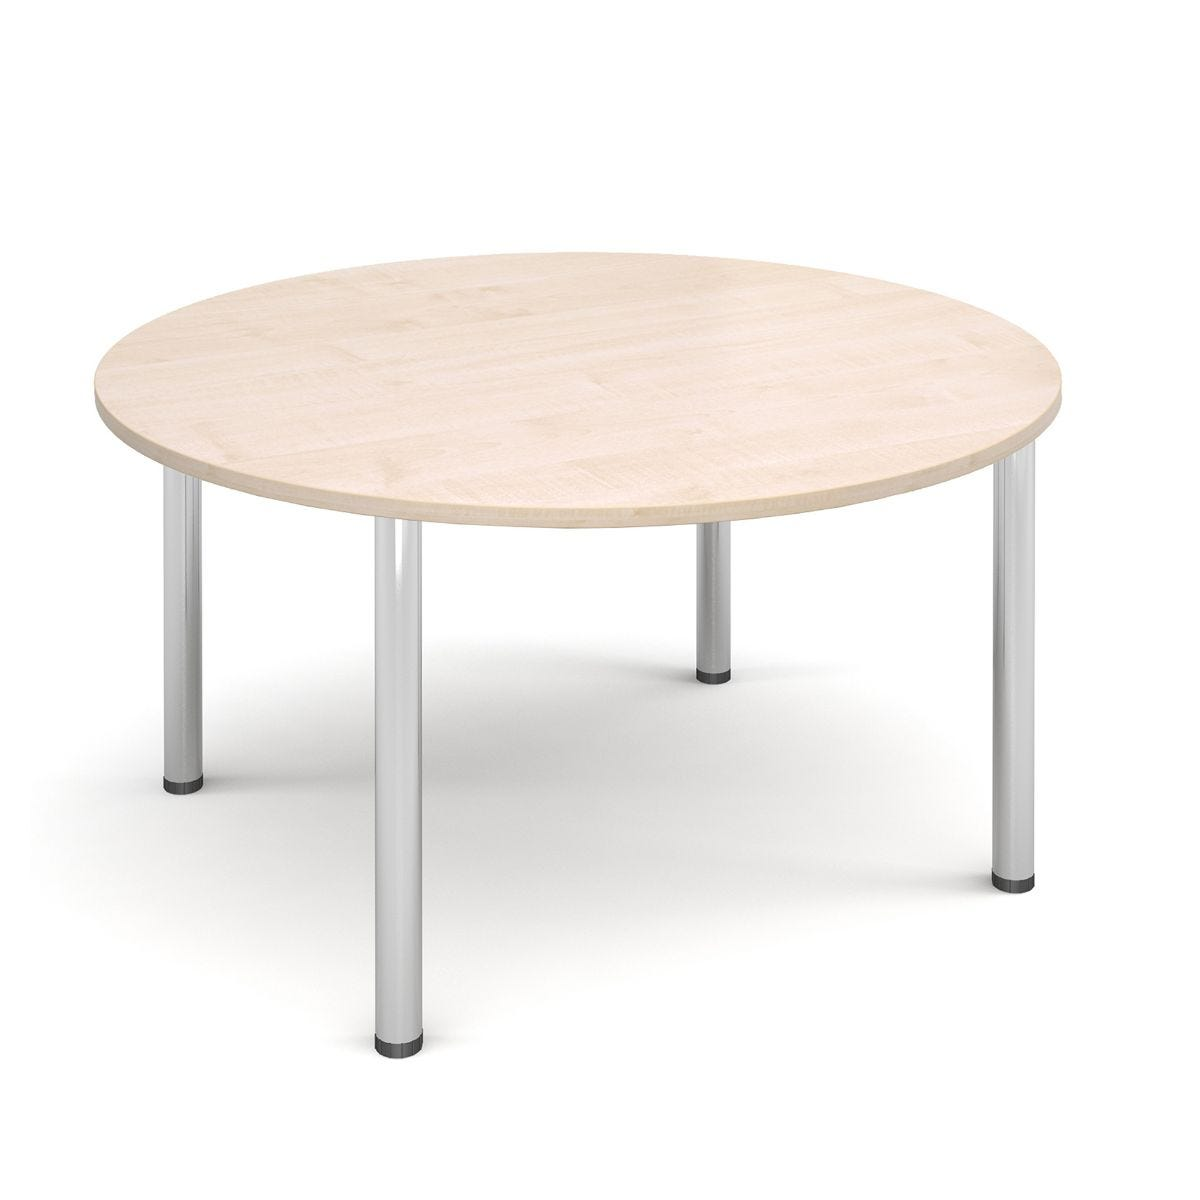 Hawk round meeting table oak octer for Round table 99